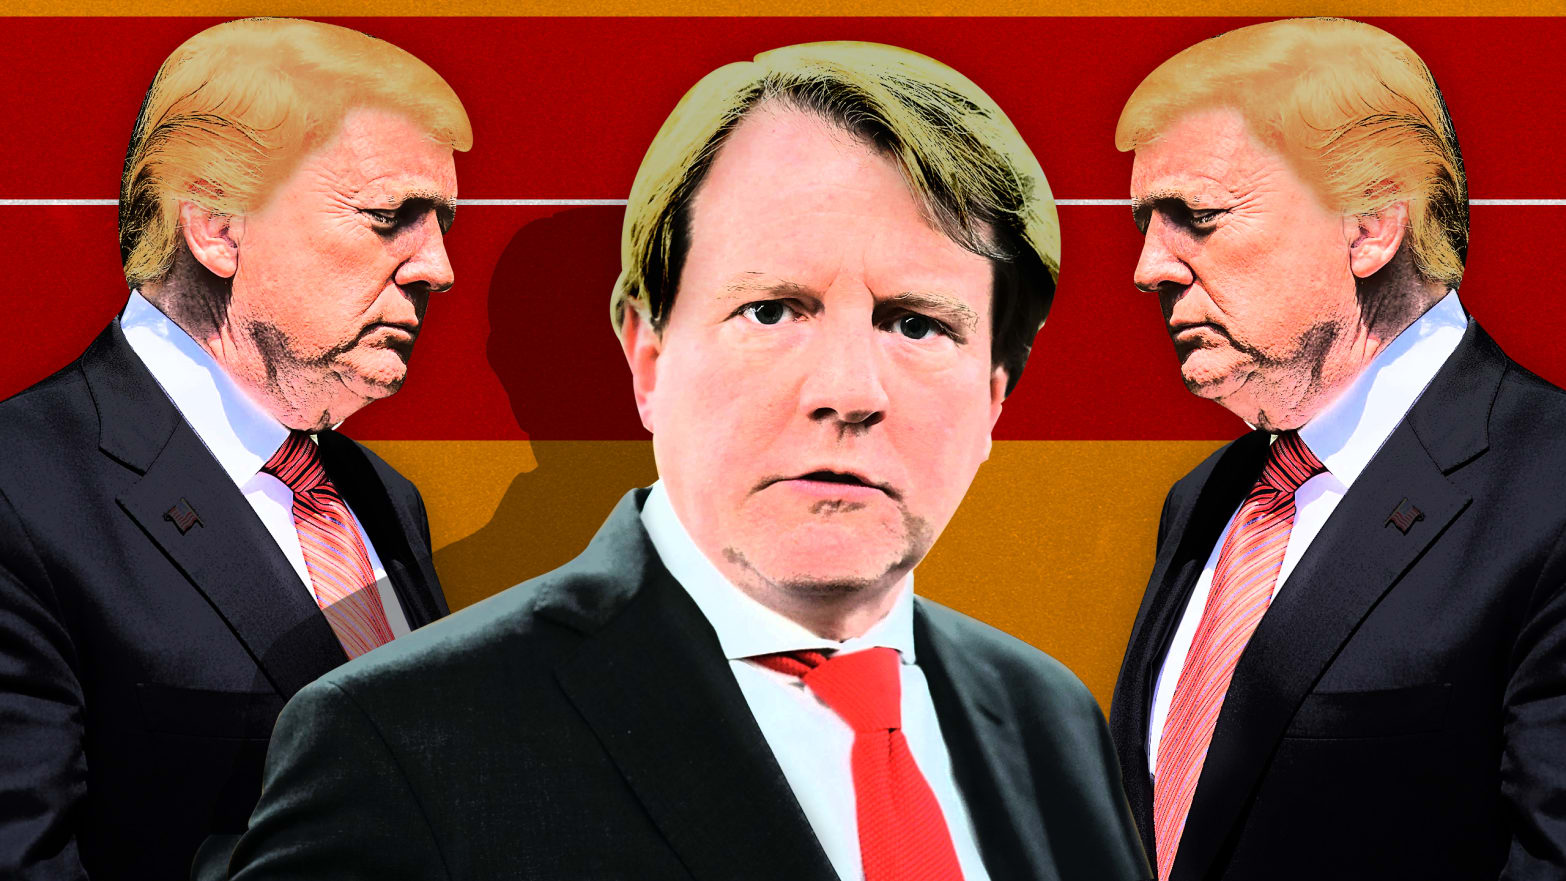 Trump and White House Counsel Don McGahn Have Been 'Barely on